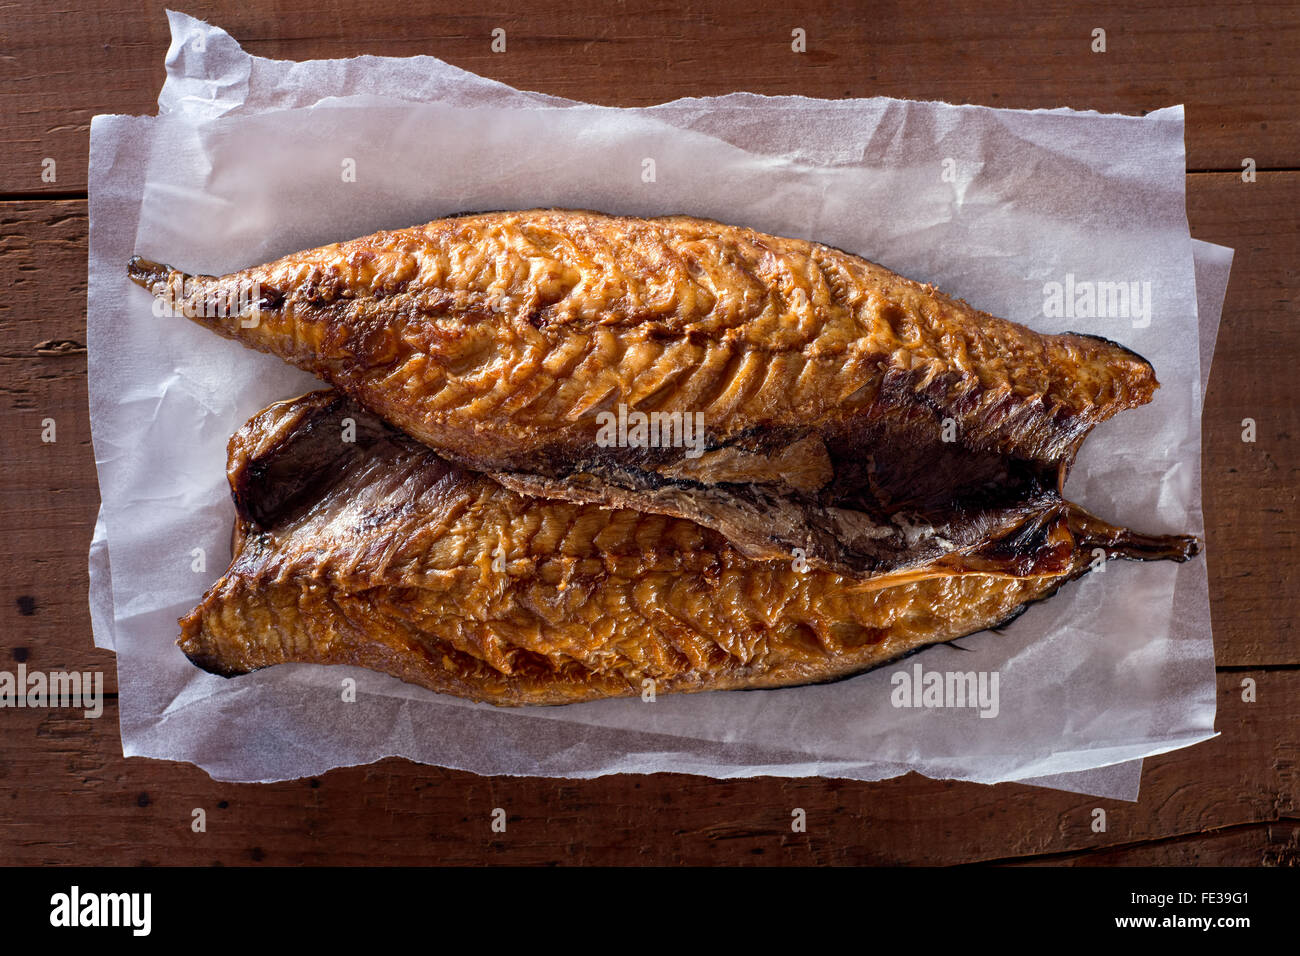 Smoked mackerel fillets on parchment paper against a rustic wooden background. - Stock Image